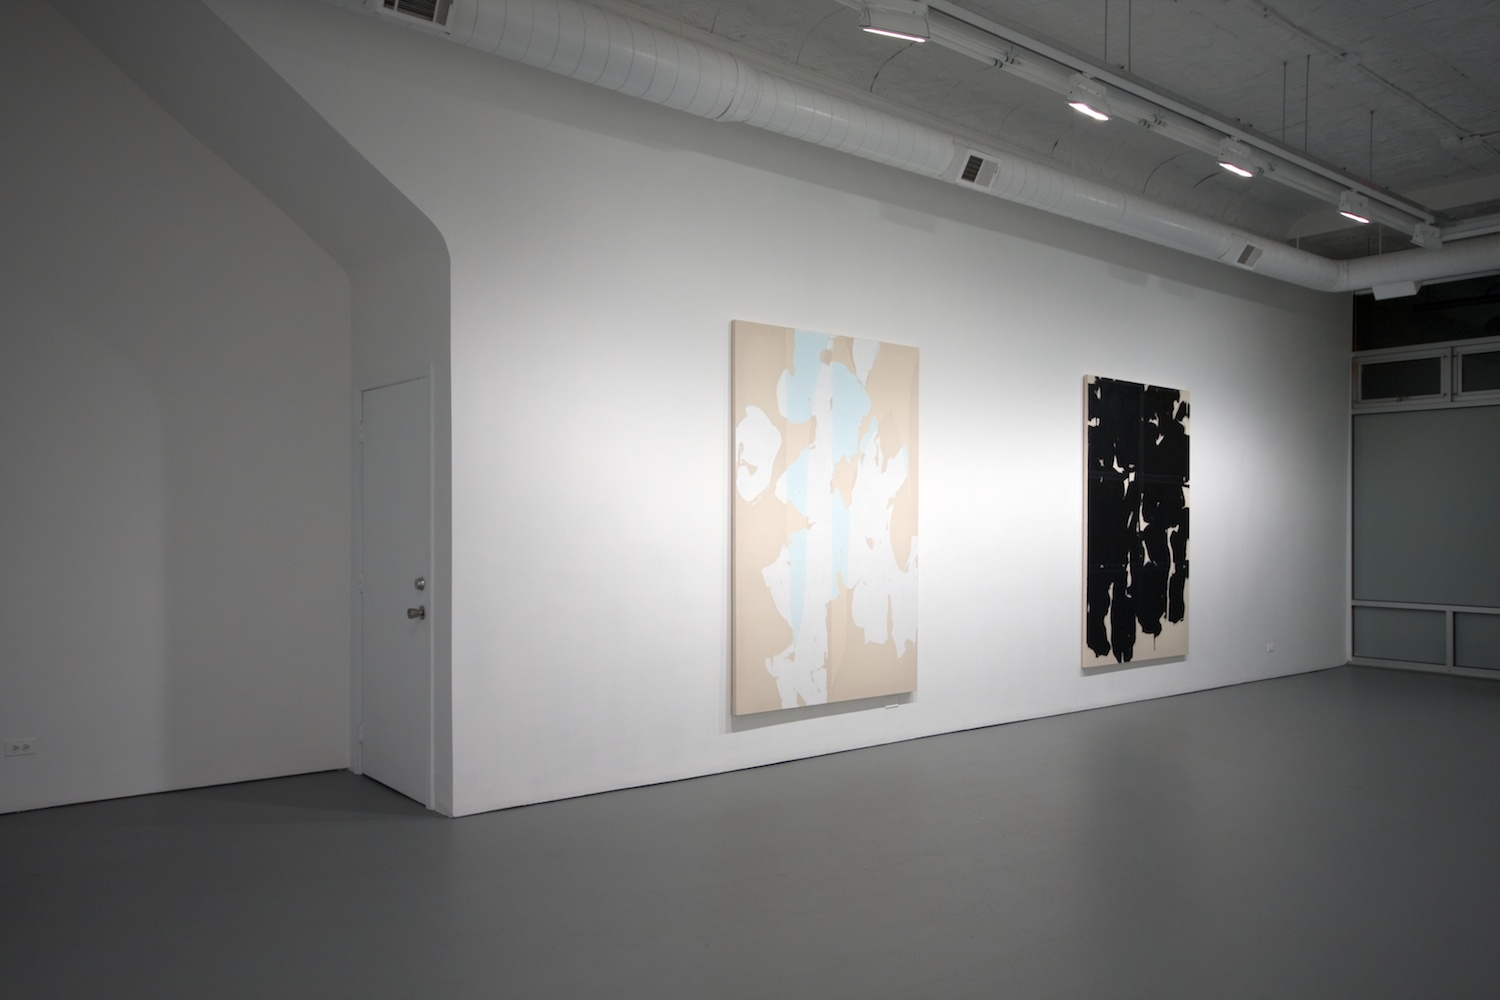 Zak Prekop 2011 Shane Campbell Gallery, Chicago Installation View